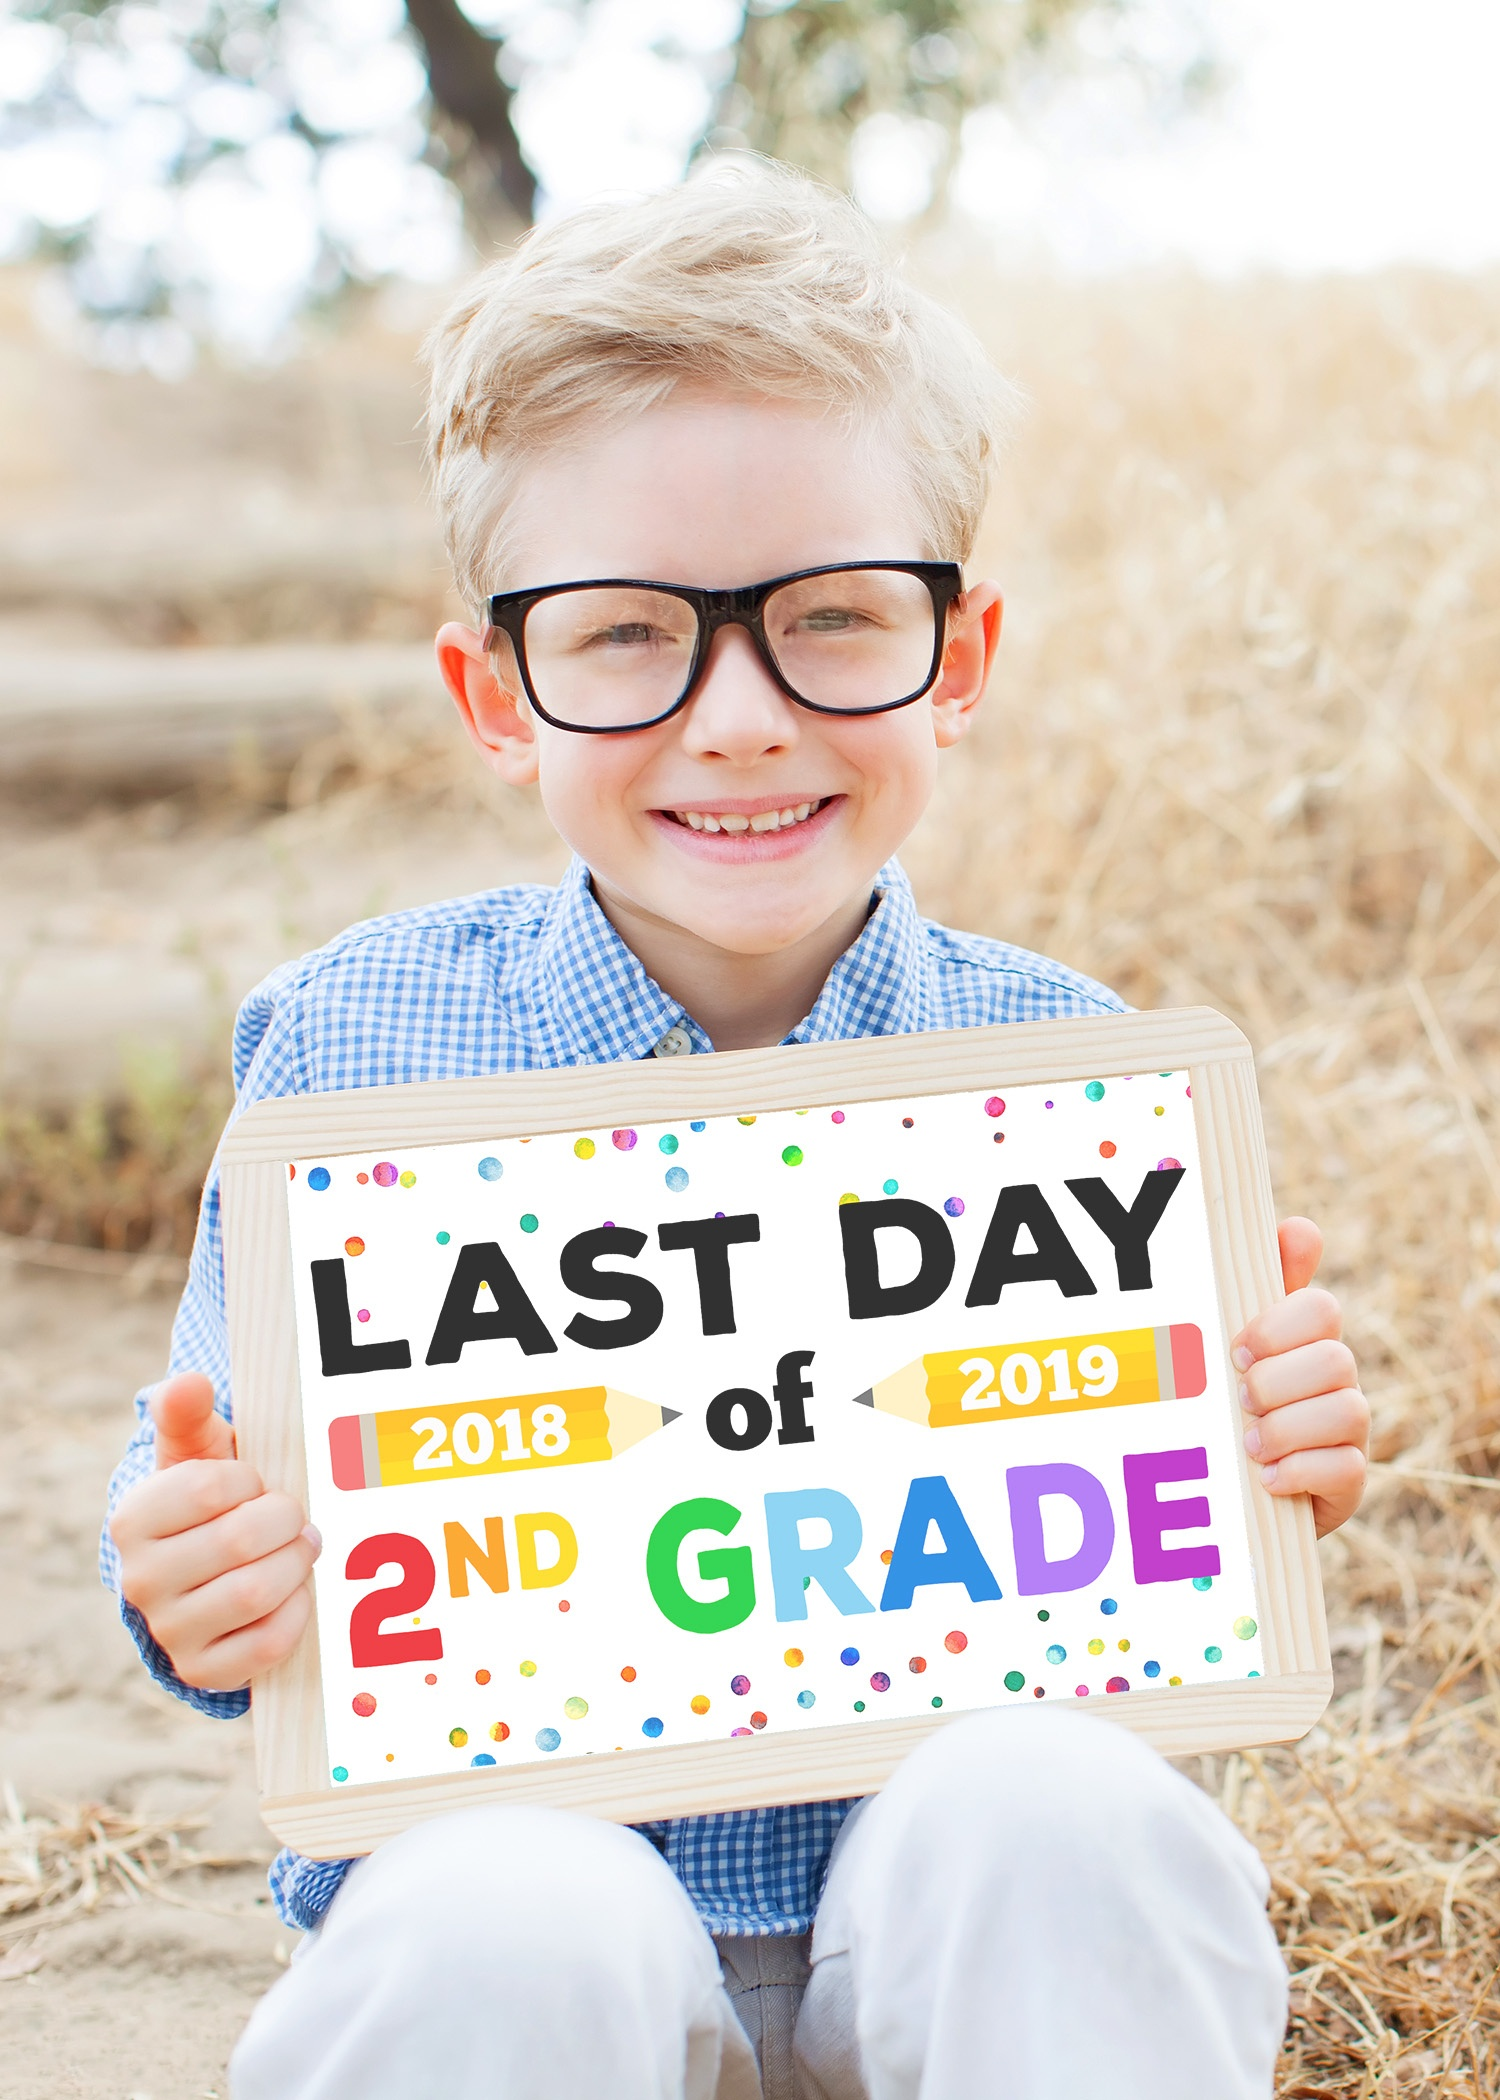 Last Day Of School Signs - Free Printable - Happiness Is Homemade - Free Printable Last Day Of School Signs 2017 2018